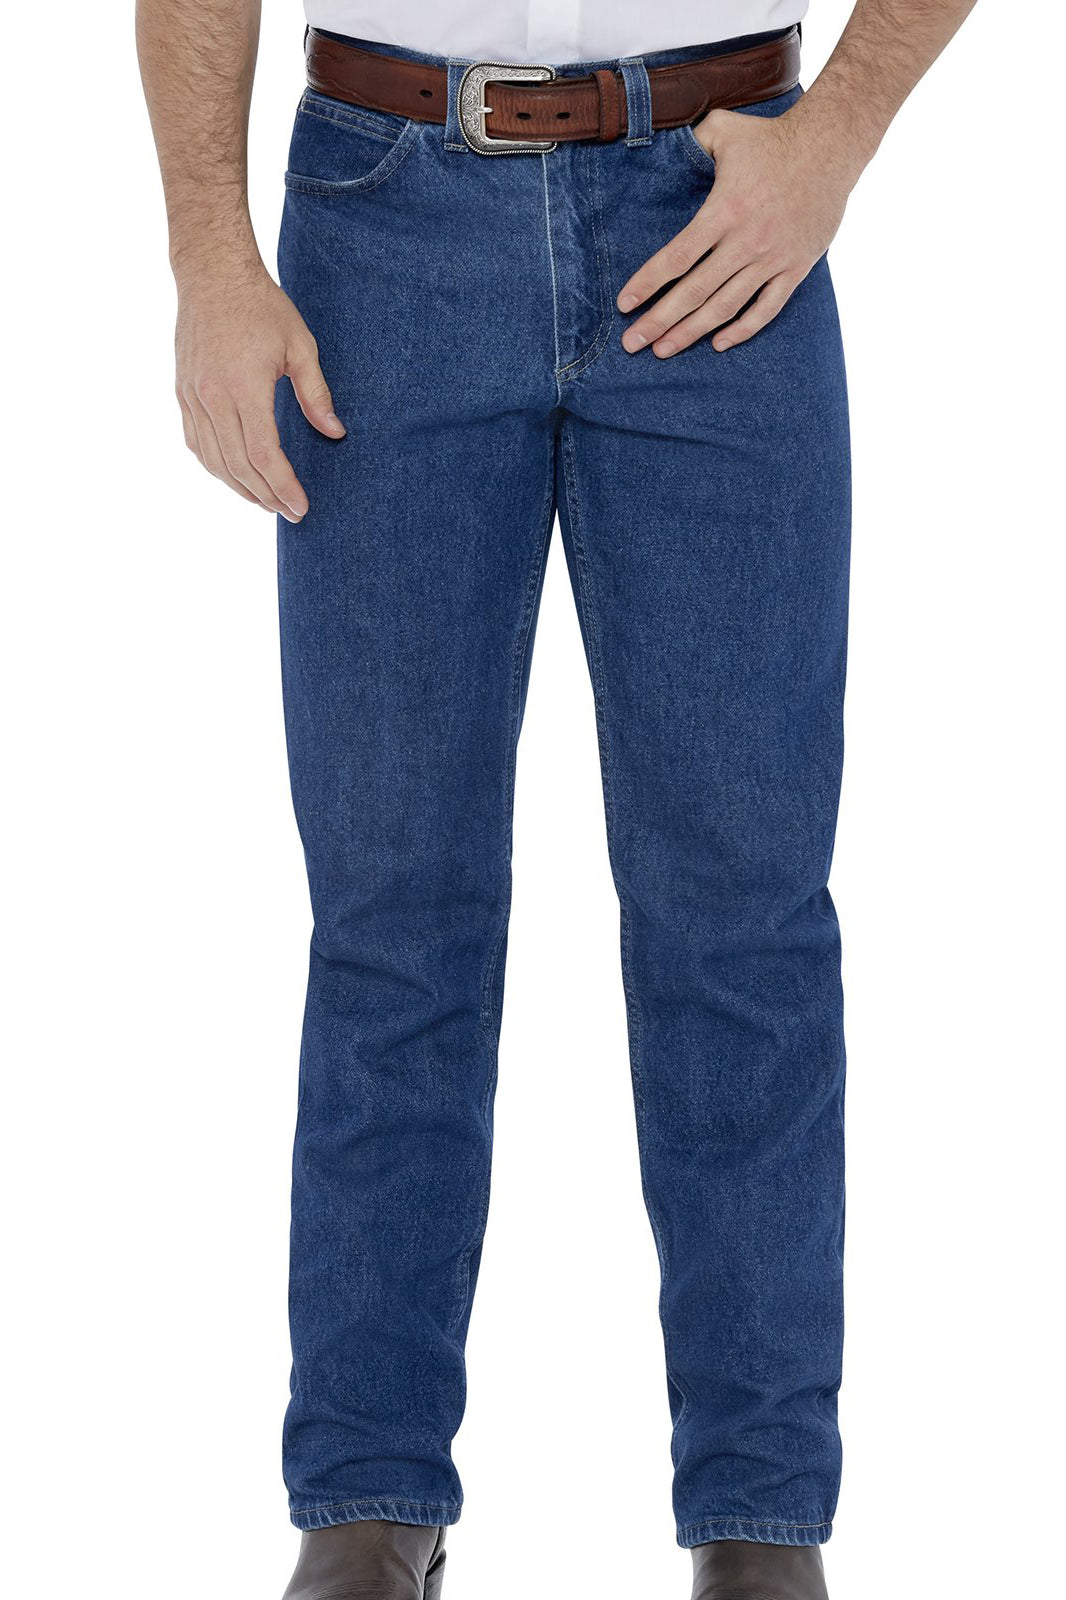 5 Pocket Made In USA Denim Jean | Ely Cattleman